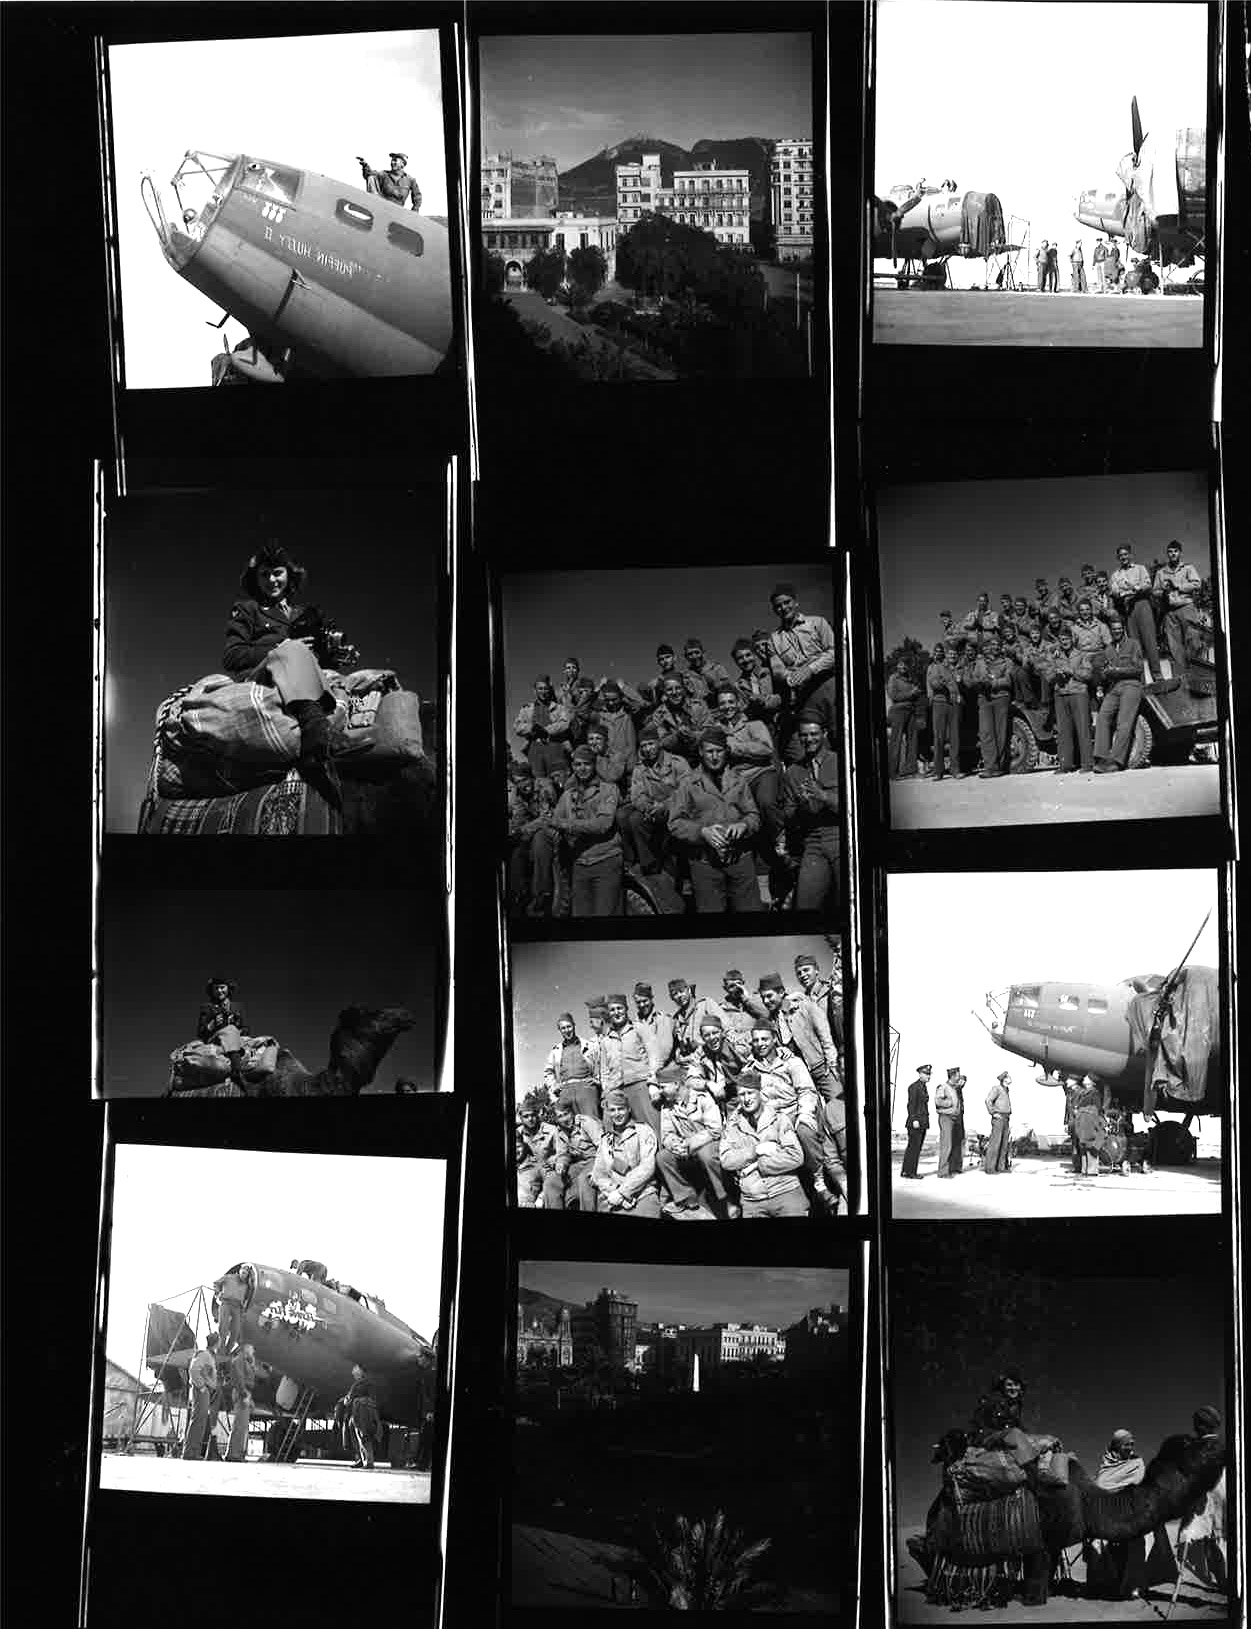 Contact sheet from Margaret Bourke-White photo set of the Tunis bombing, 1943.